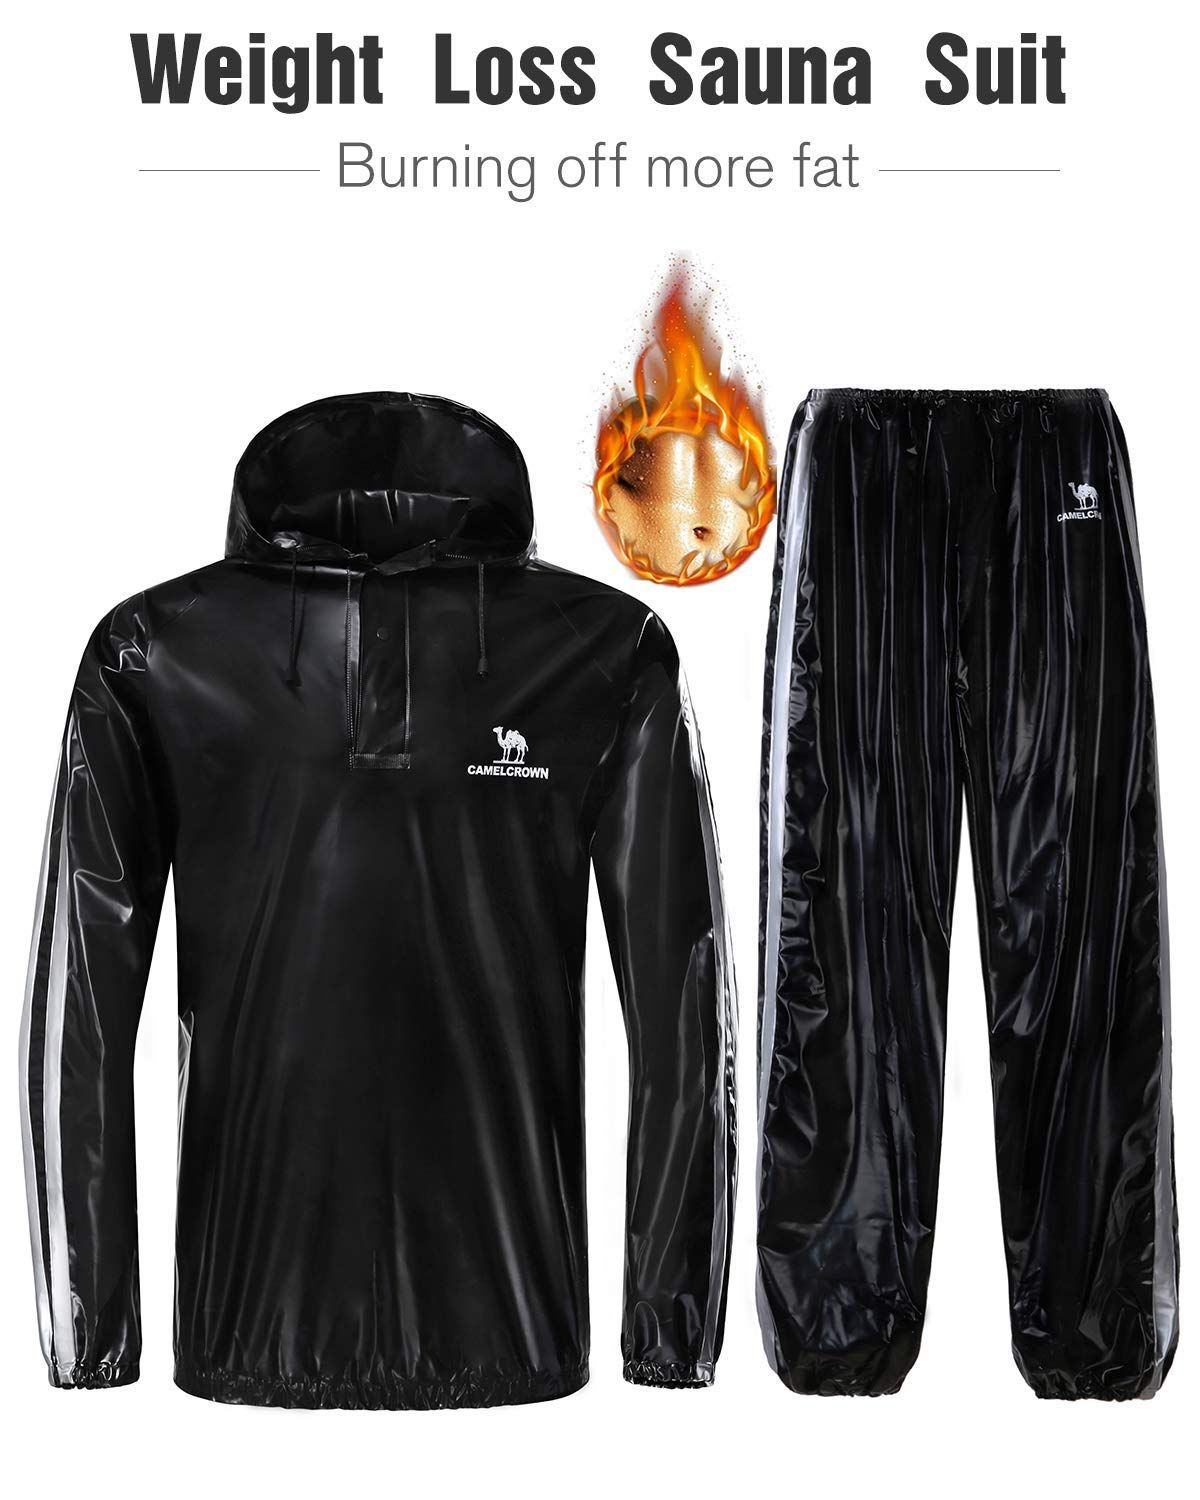 New Men Women Sweat Sauna Suit Fitness Loss Weight Exercise Training Tracksuit